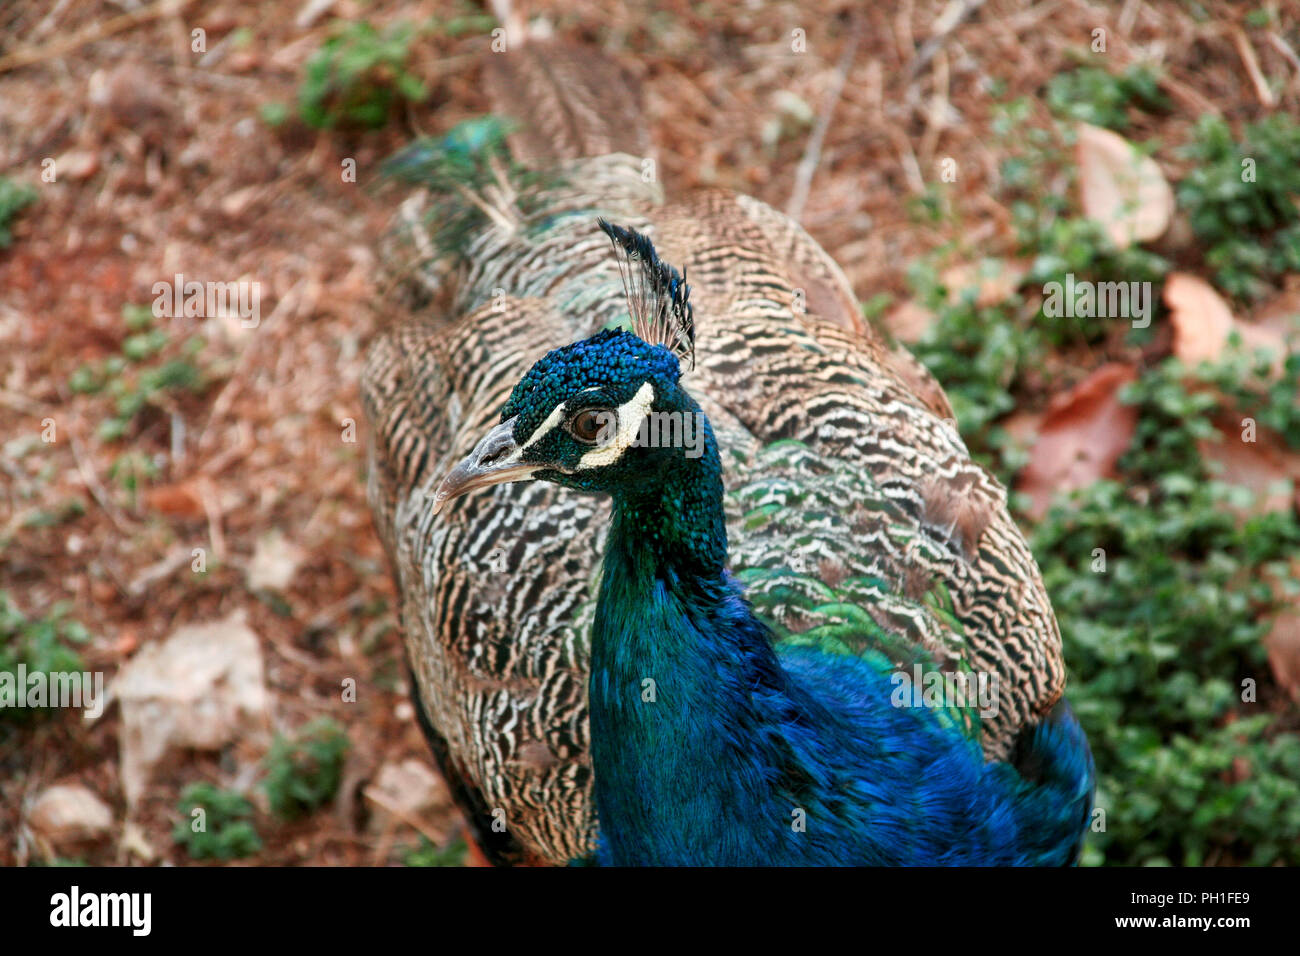 Peacock bird in nature, close up. A beautiful bird of paradise peacock in the garden the natural environment. - Stock Image